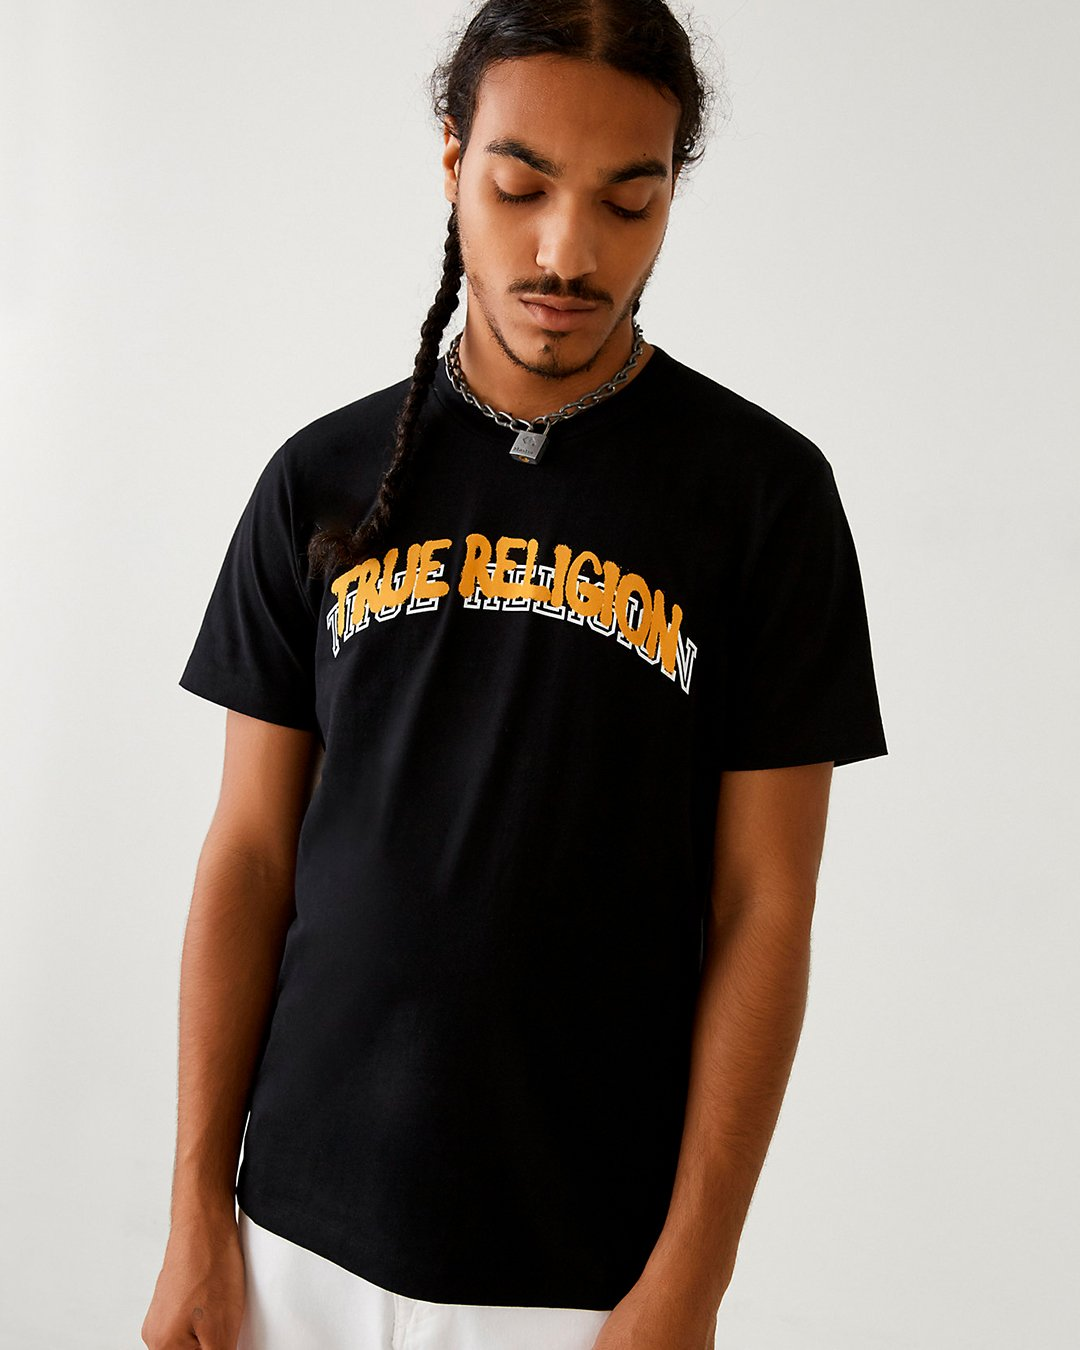 LOGO TEE TRUE RELIGION - Dicons - True Religion